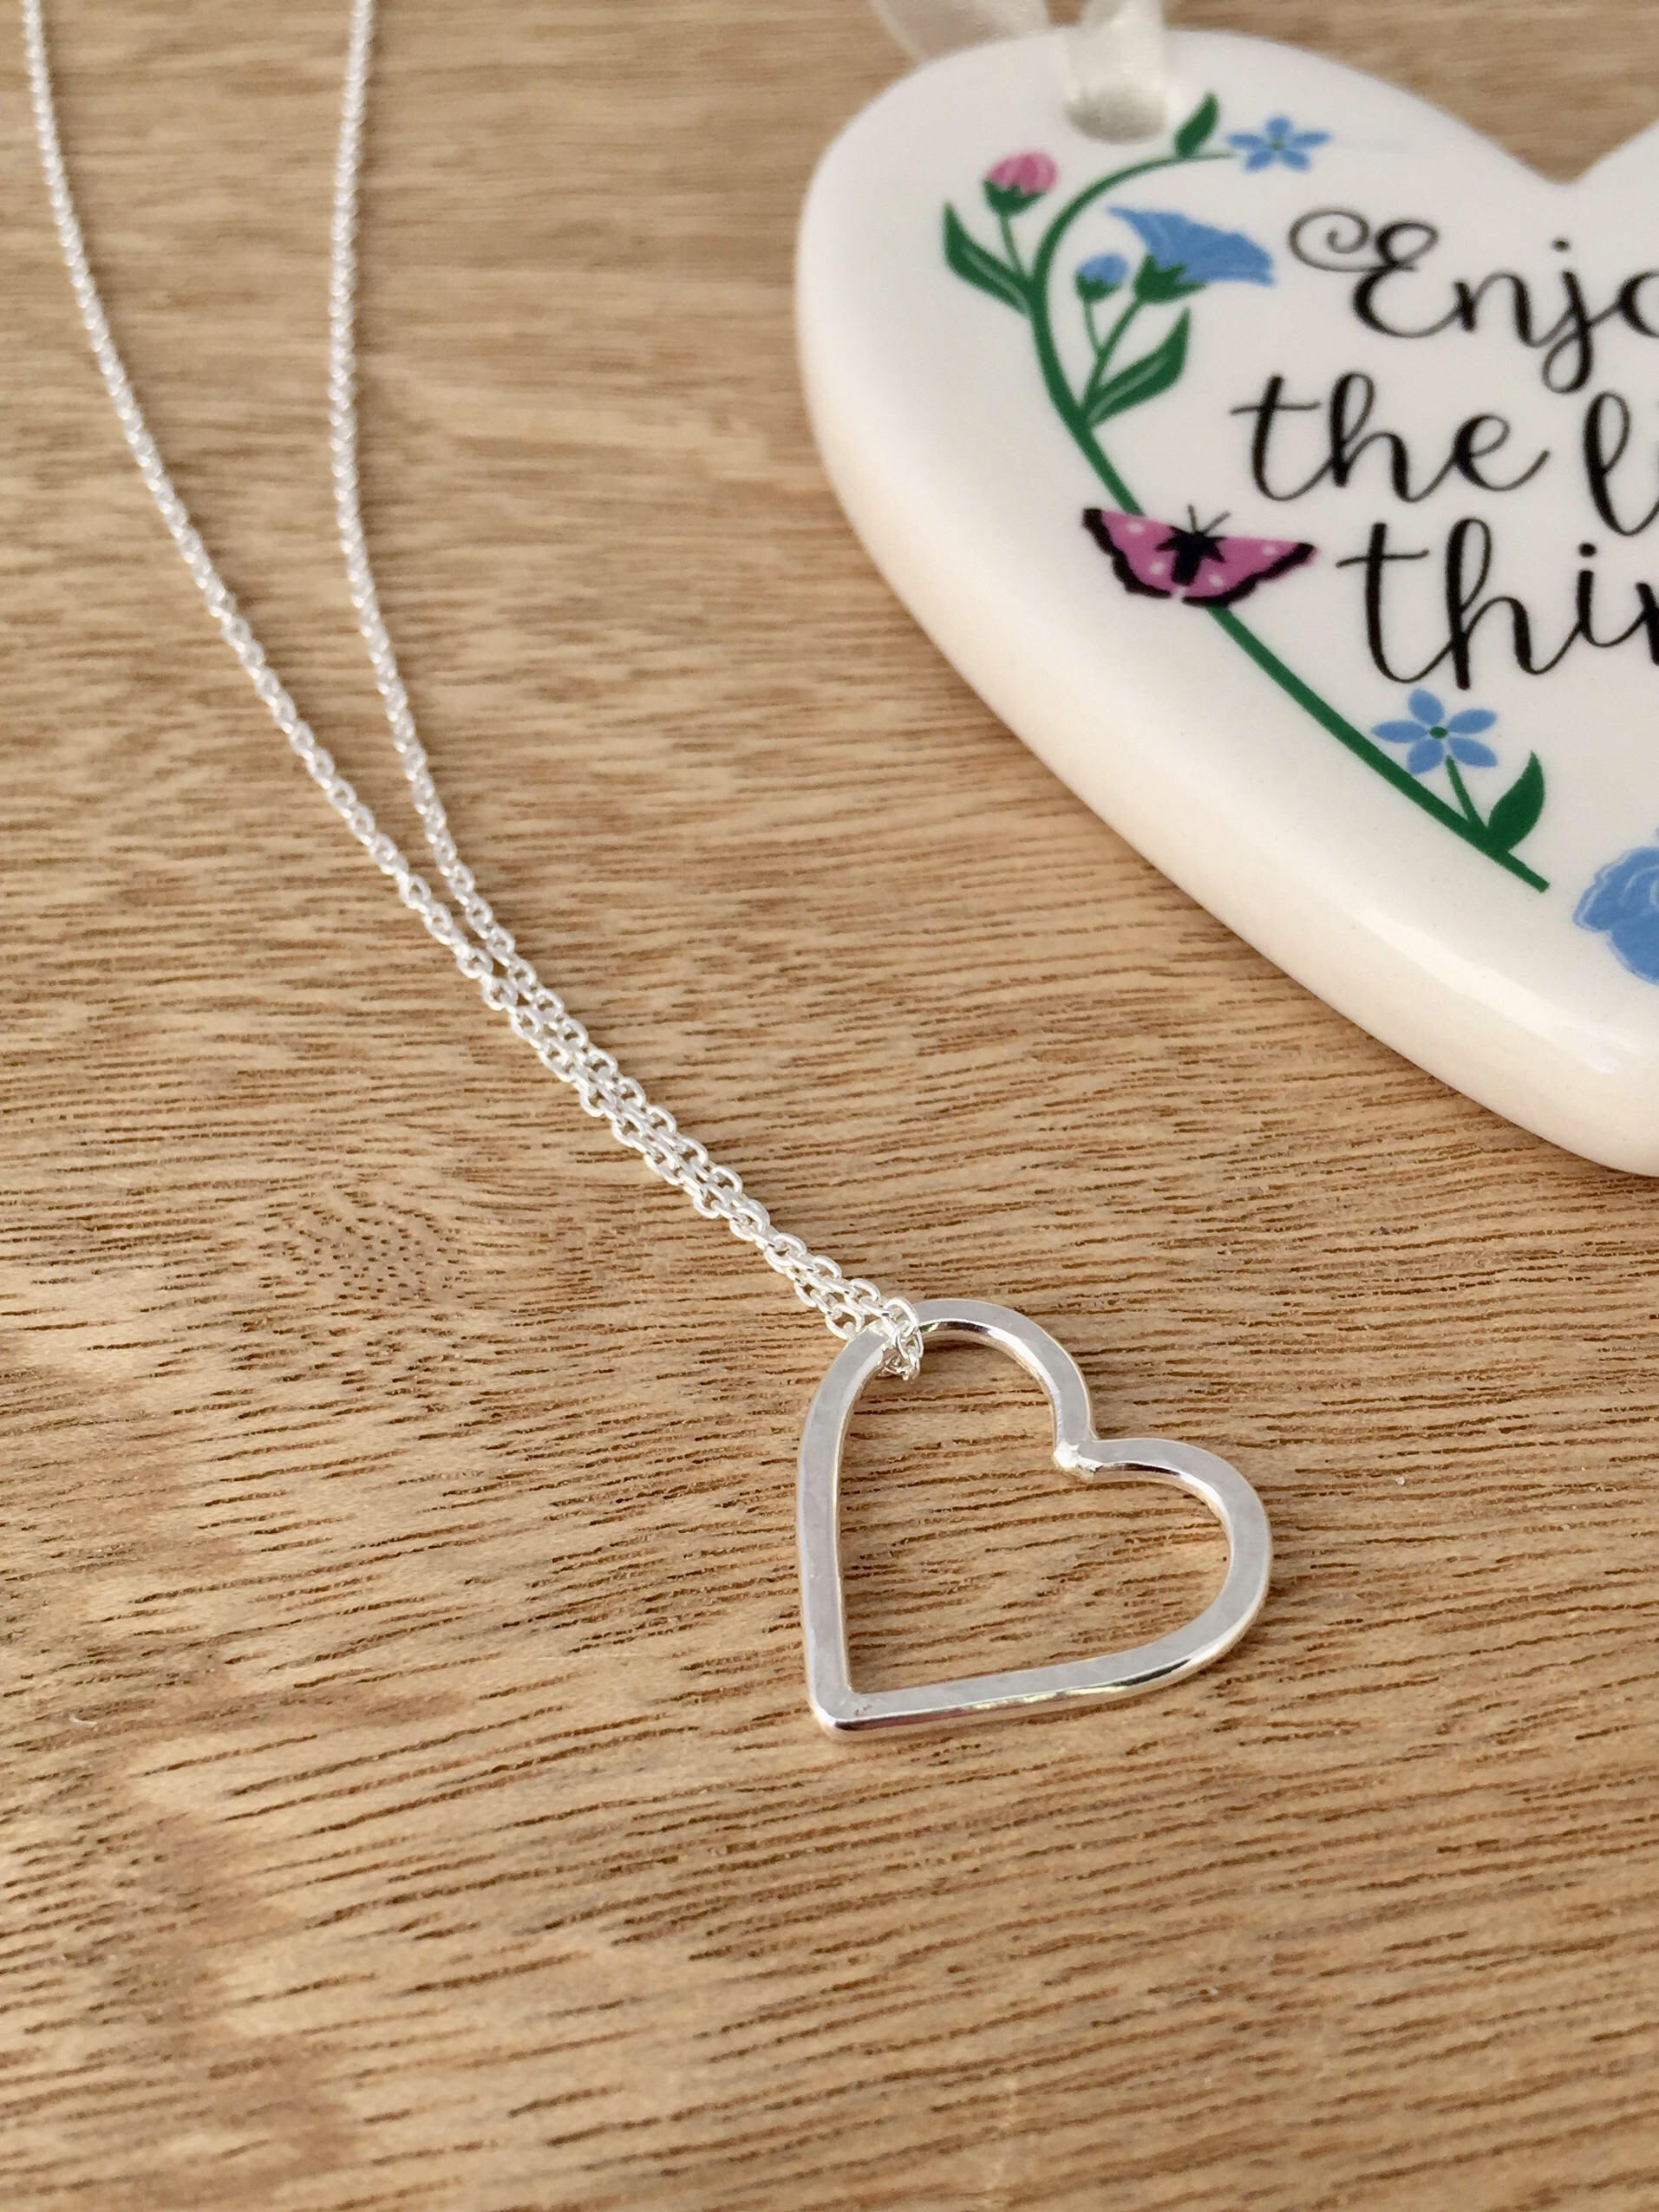 3592d465a8 Excited to share the latest addition to my #etsy shop: Handmade Sterling  Silver Heart Necklace #jewellery #necklace